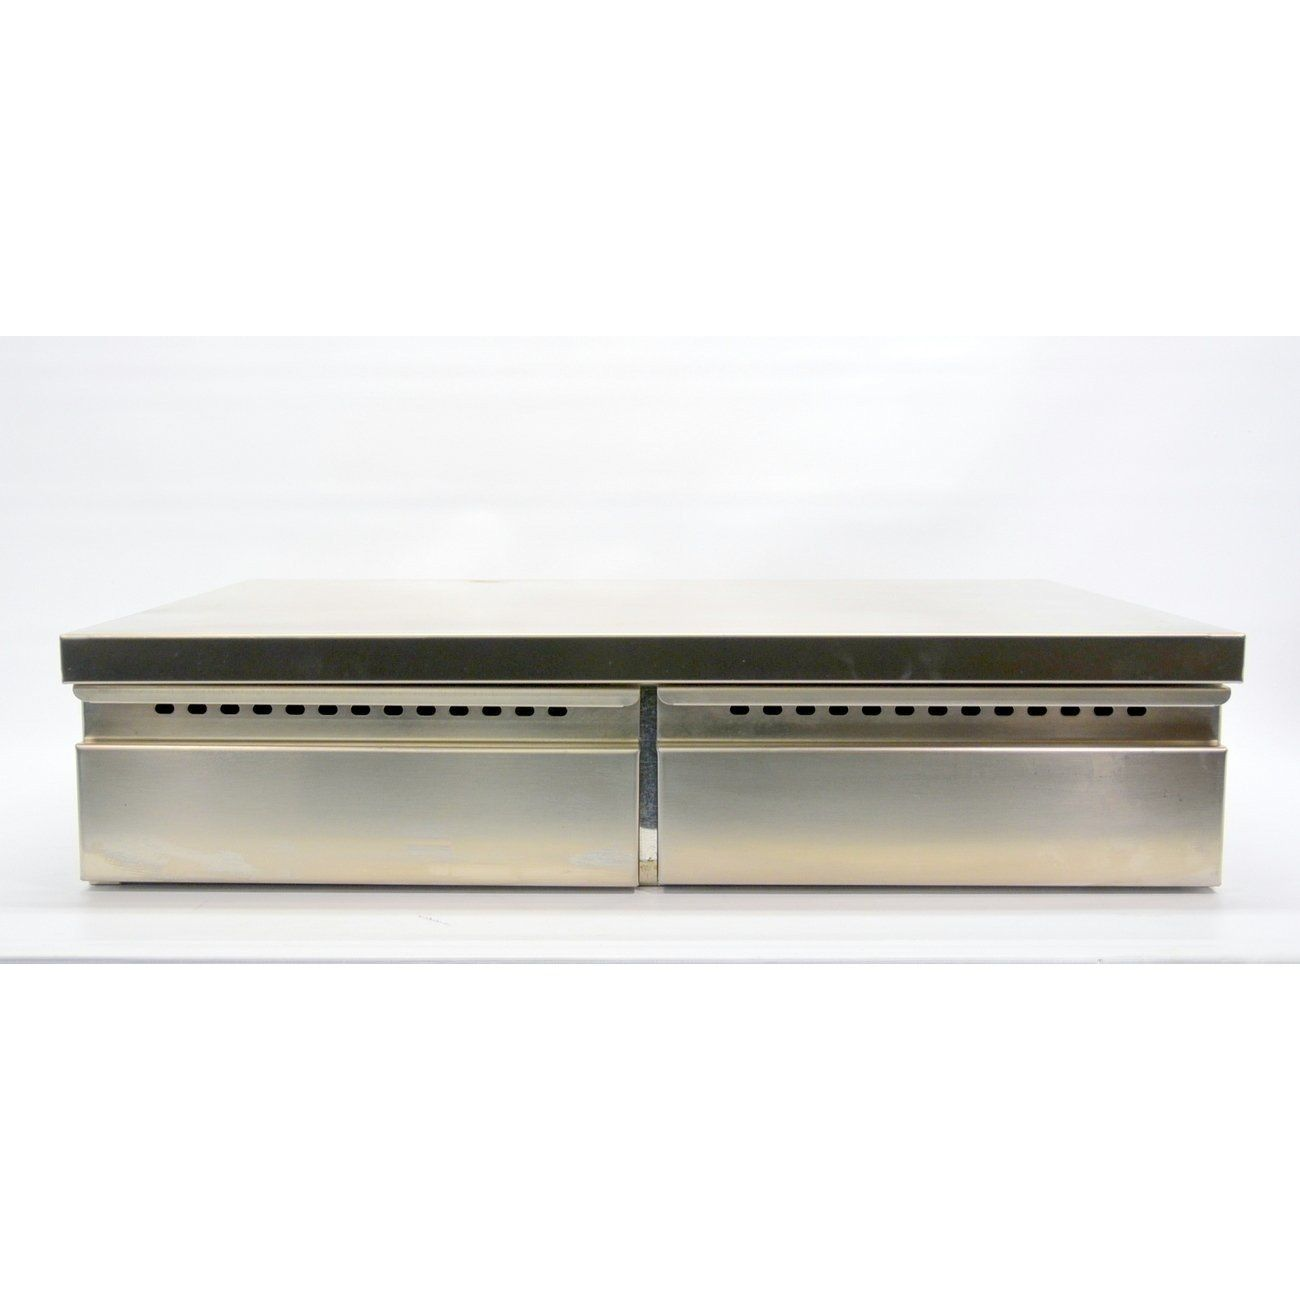 Commercial Espresso Coffee Knockbox Stainless Steel Pull Out